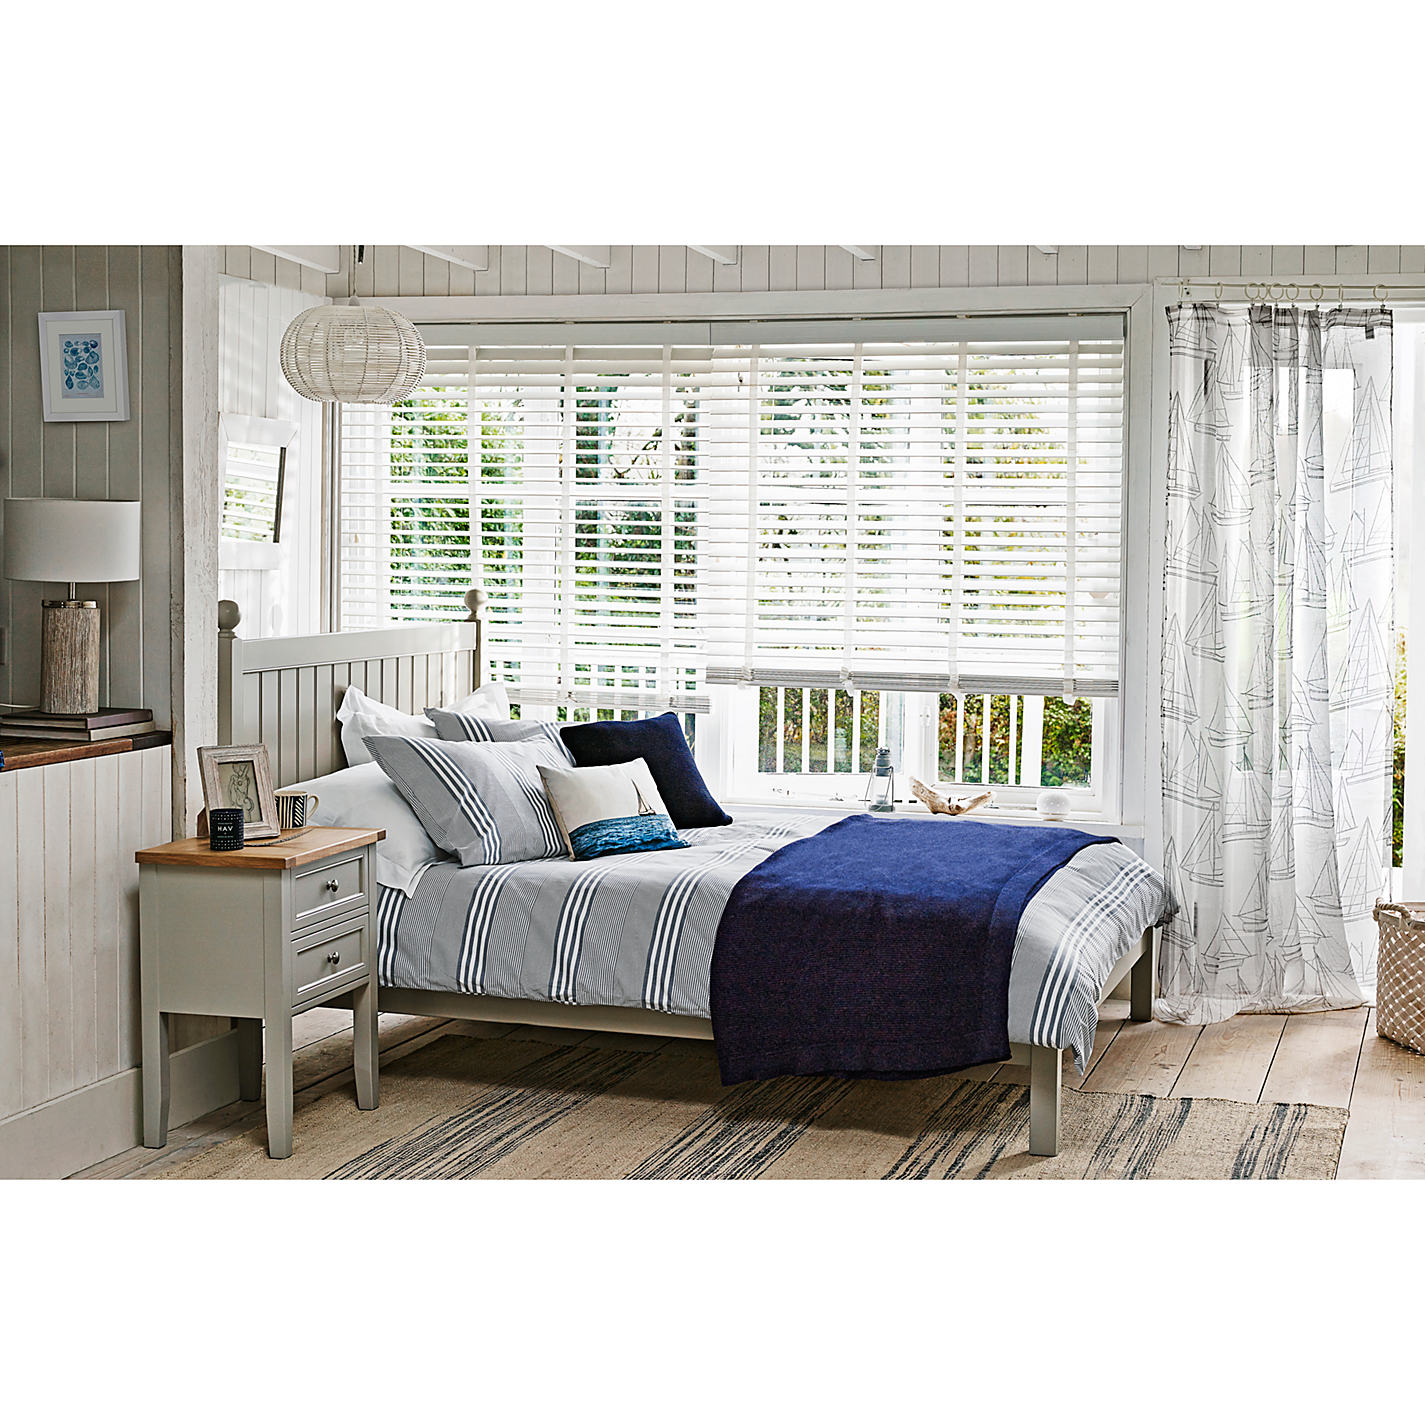 Bedroom Furniture John Lewis buy john lewis st ives bedroom furniture | john lewis